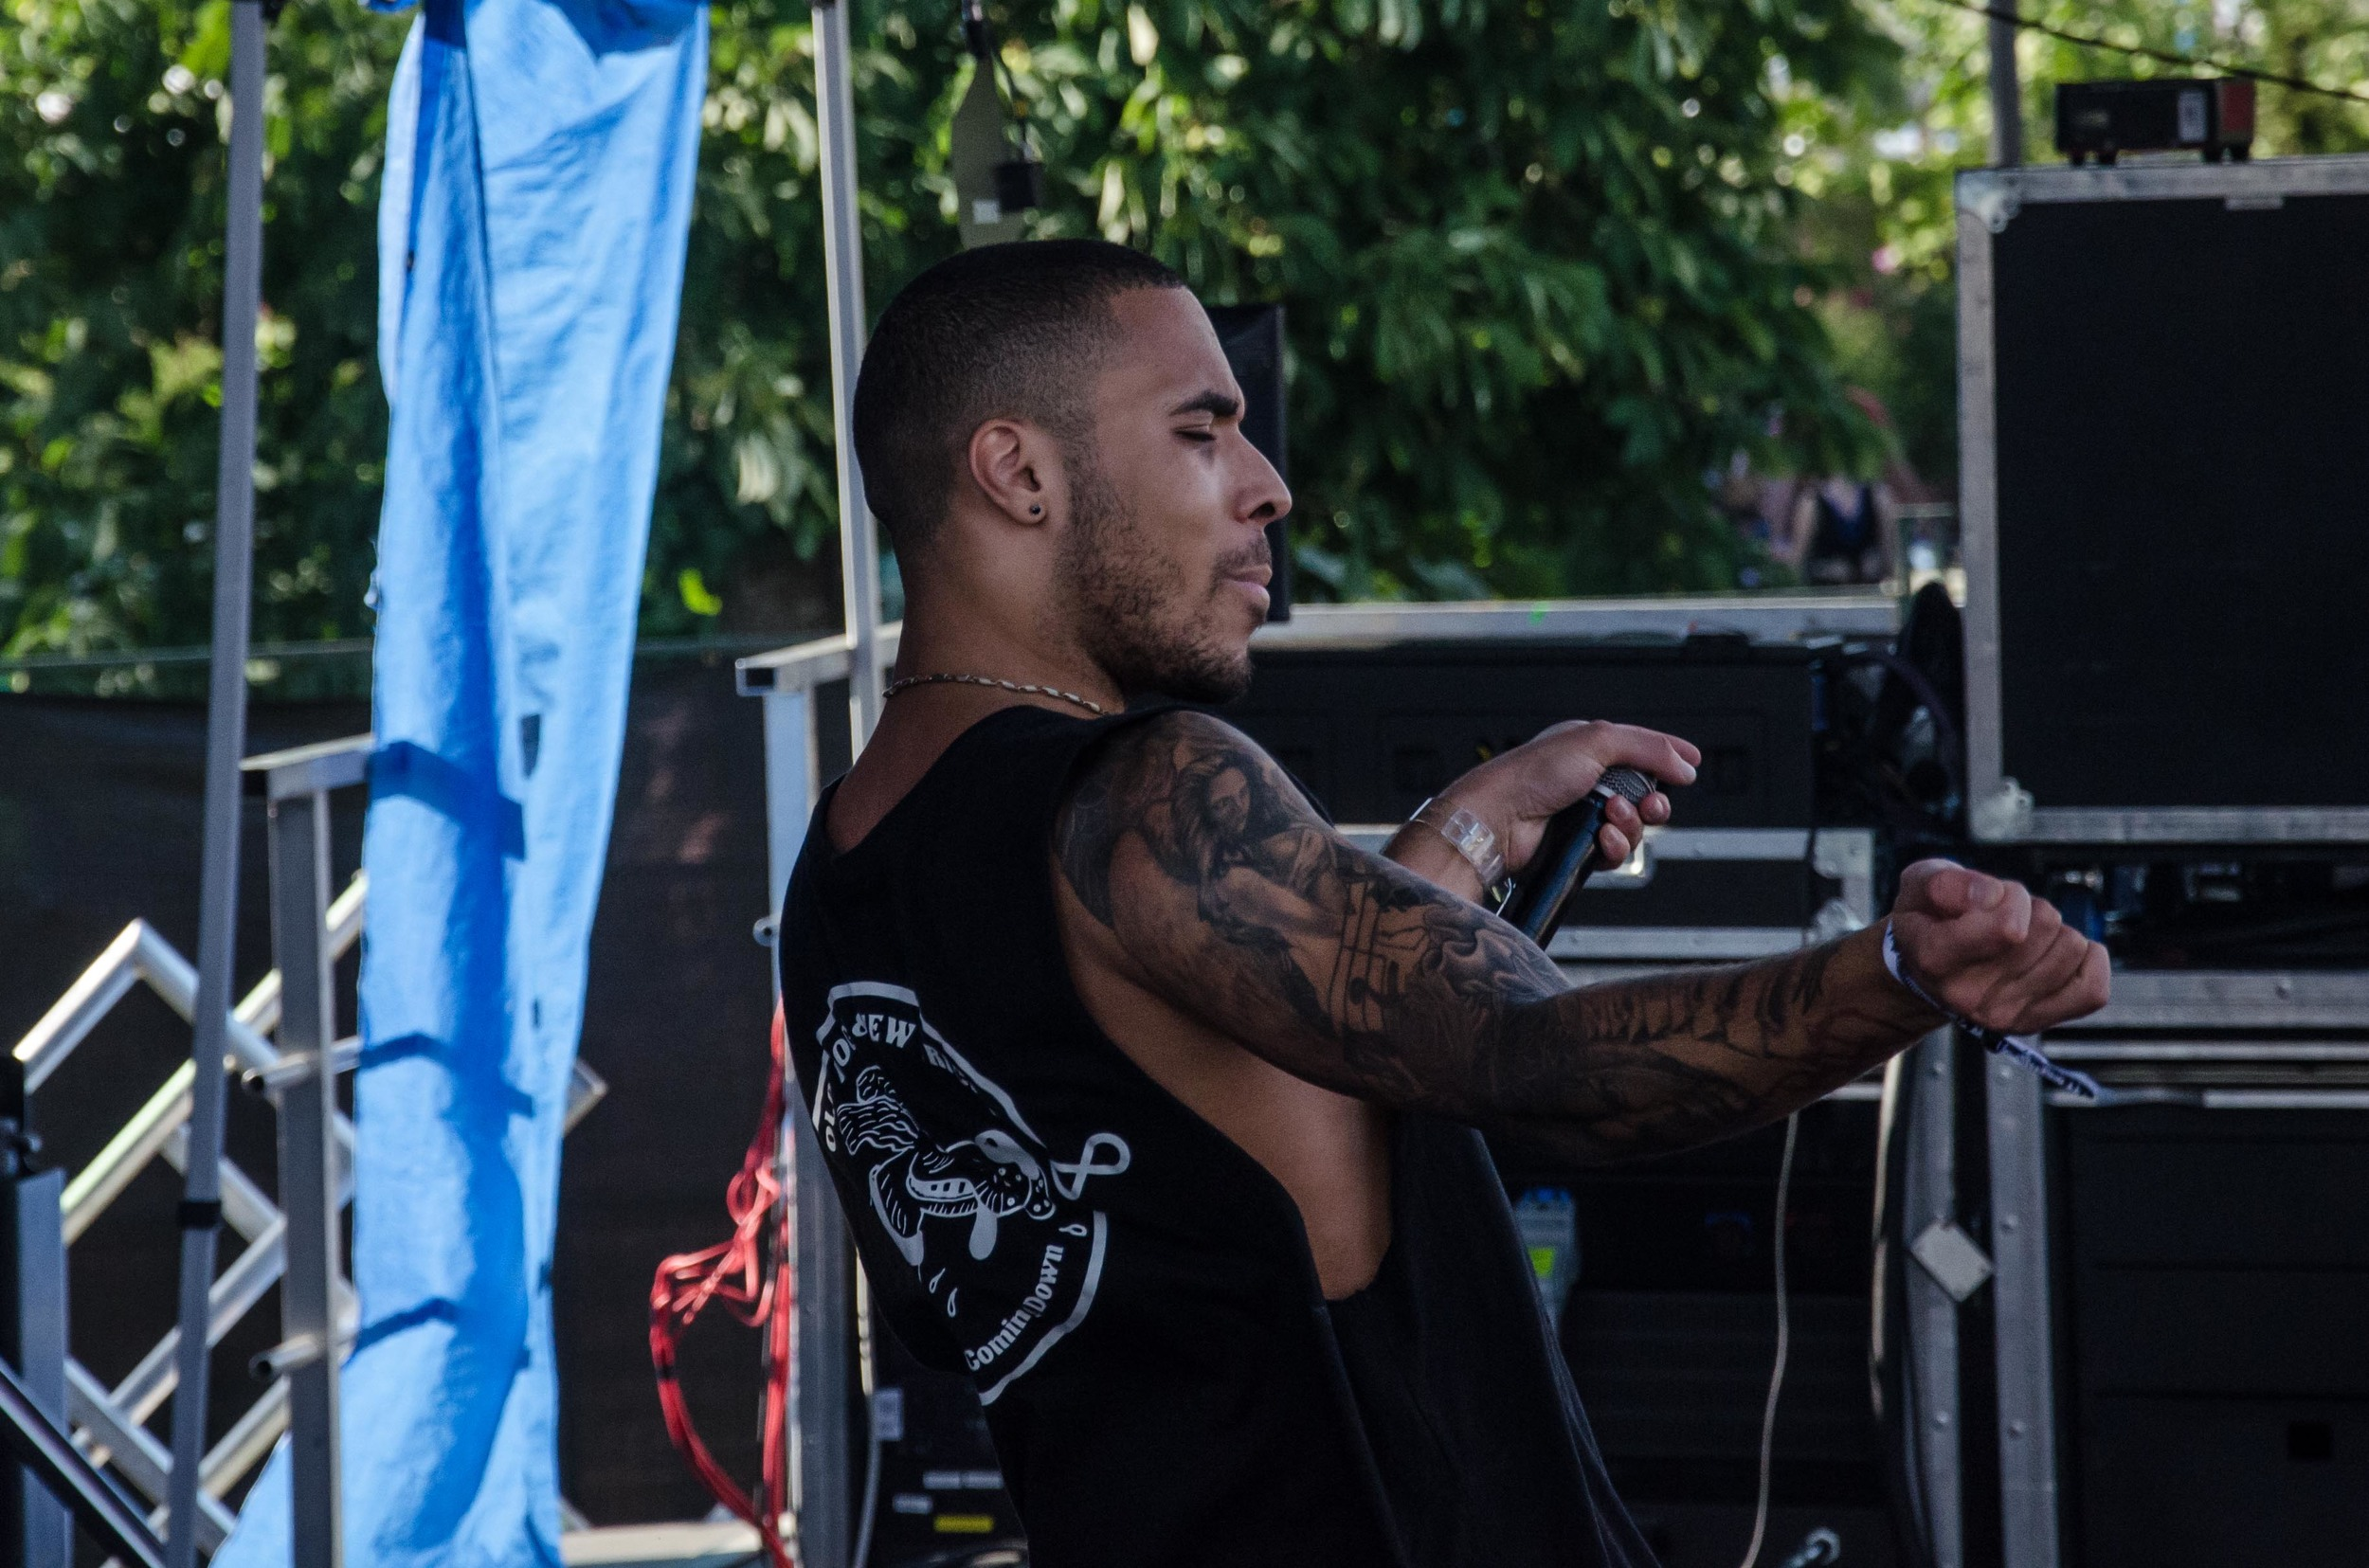 Troyboi Fvded In The Park